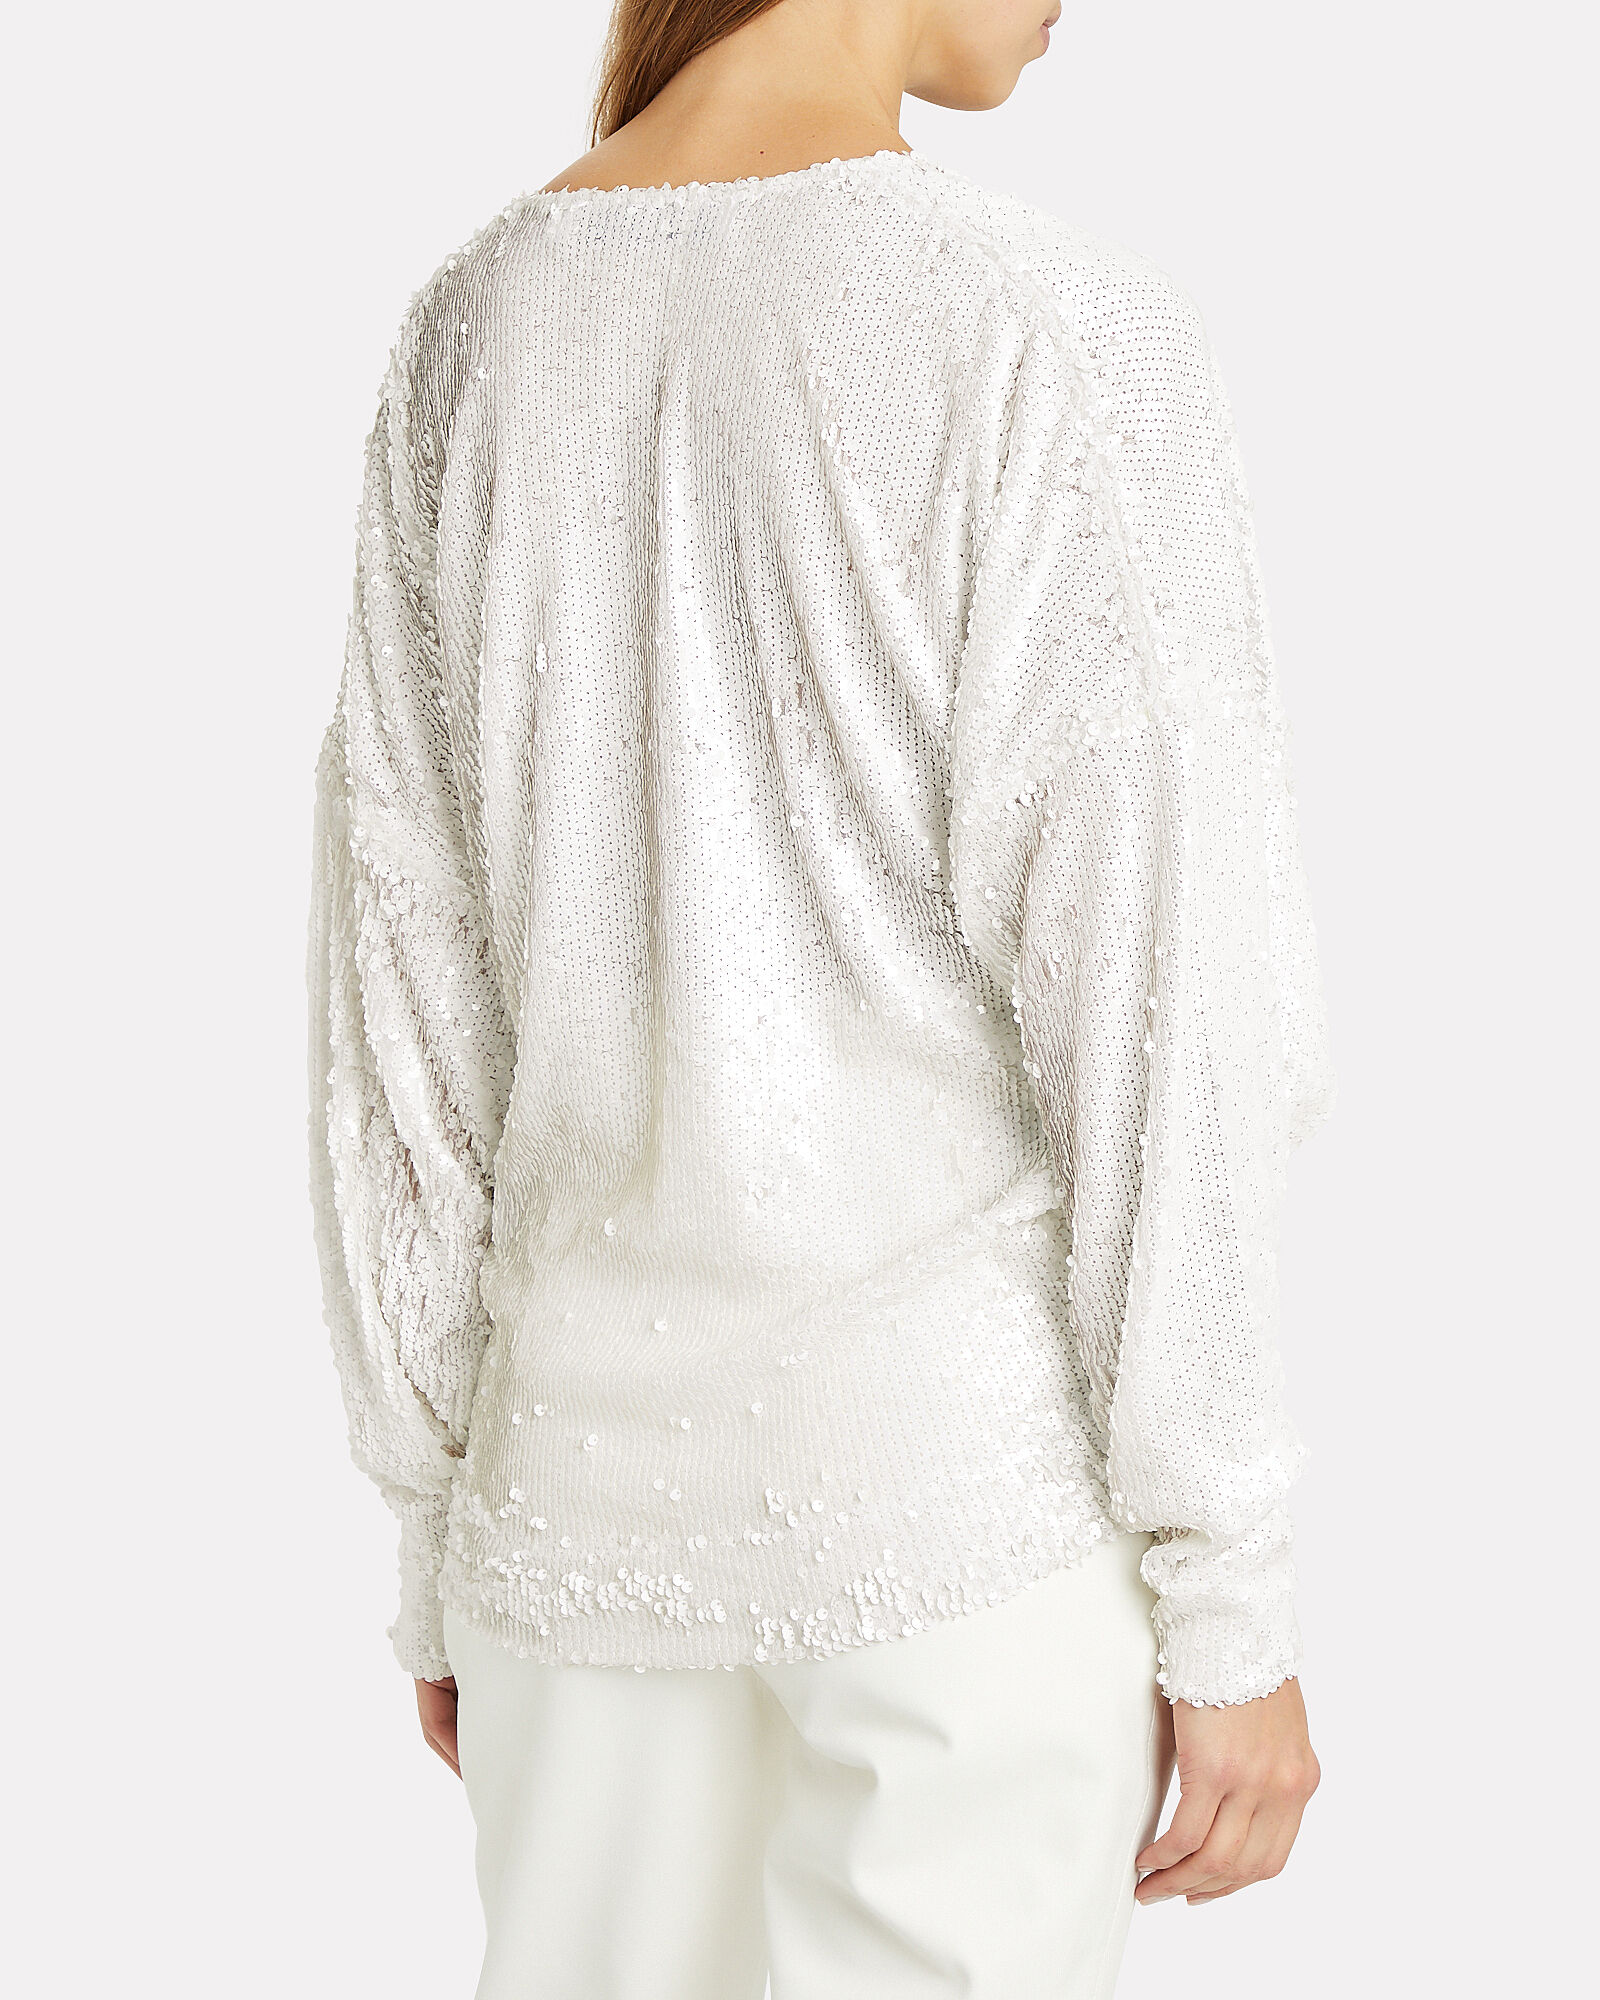 Around Sequin-Embellished Sweater, WHITE, hi-res